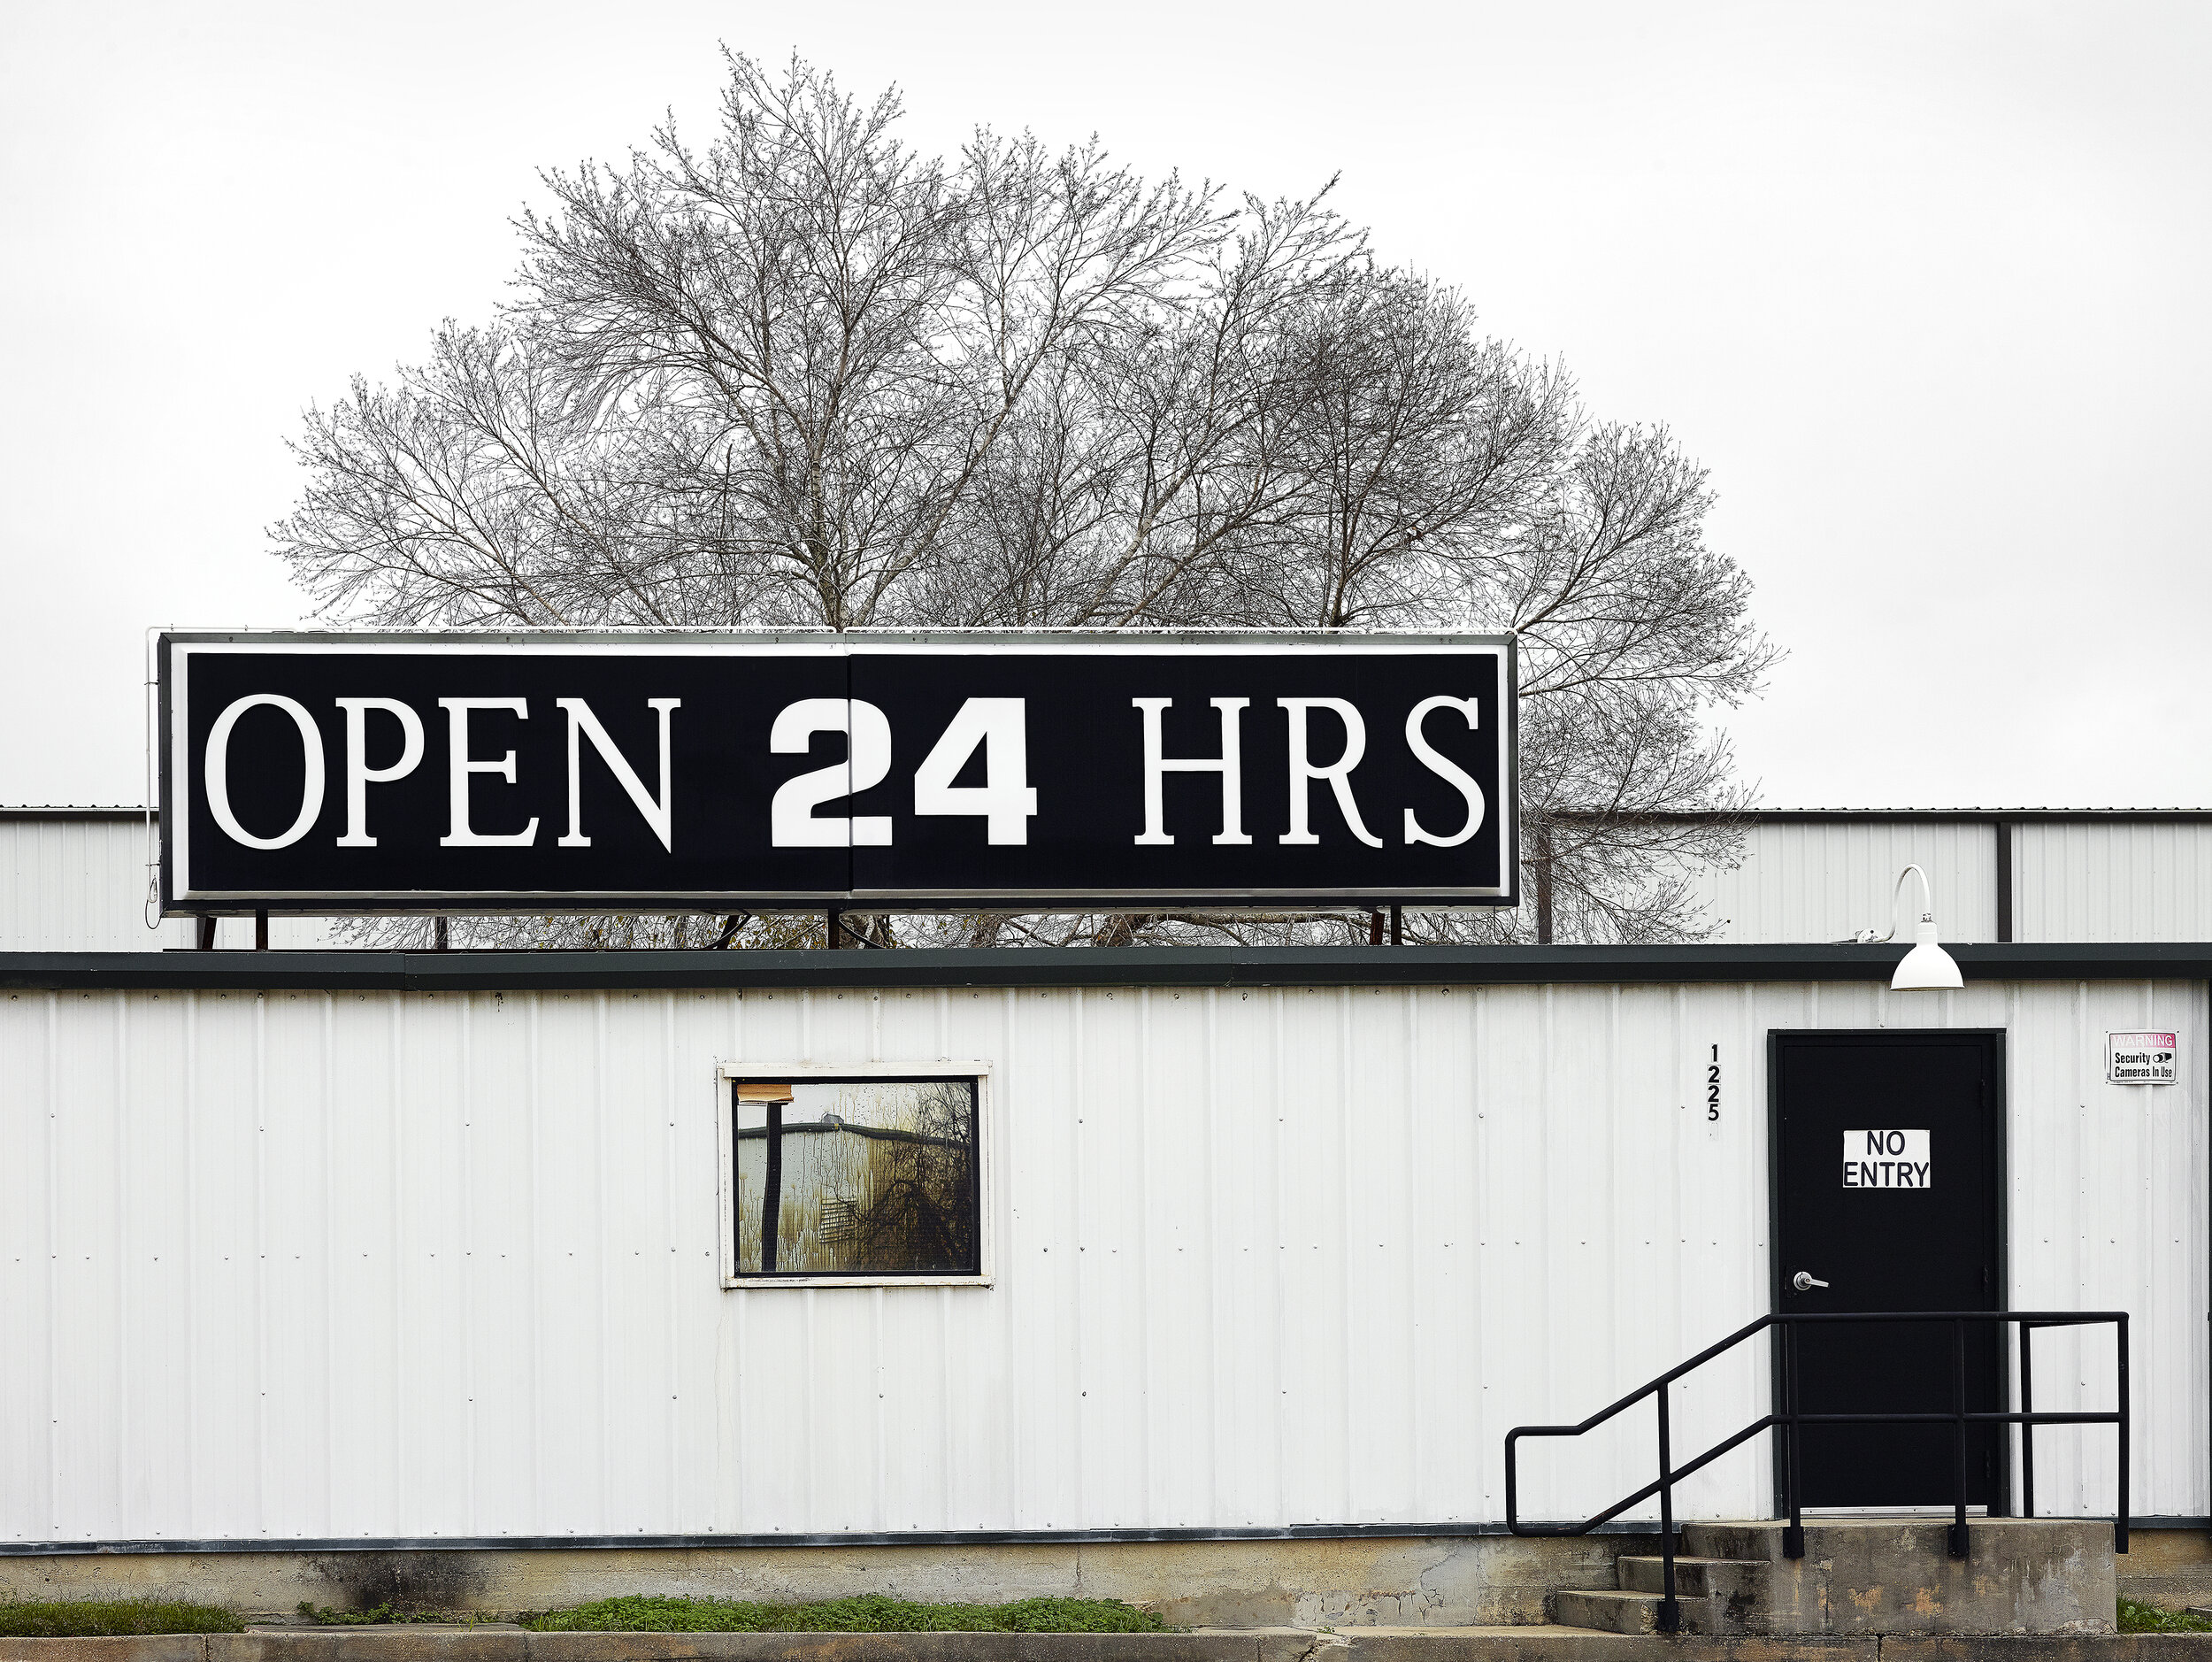 Open 24 Hours - Archival Giclée Print on Hahnemühle Photo RagPrint: 127 x 98.4 cmEdition of 8 + 2AP